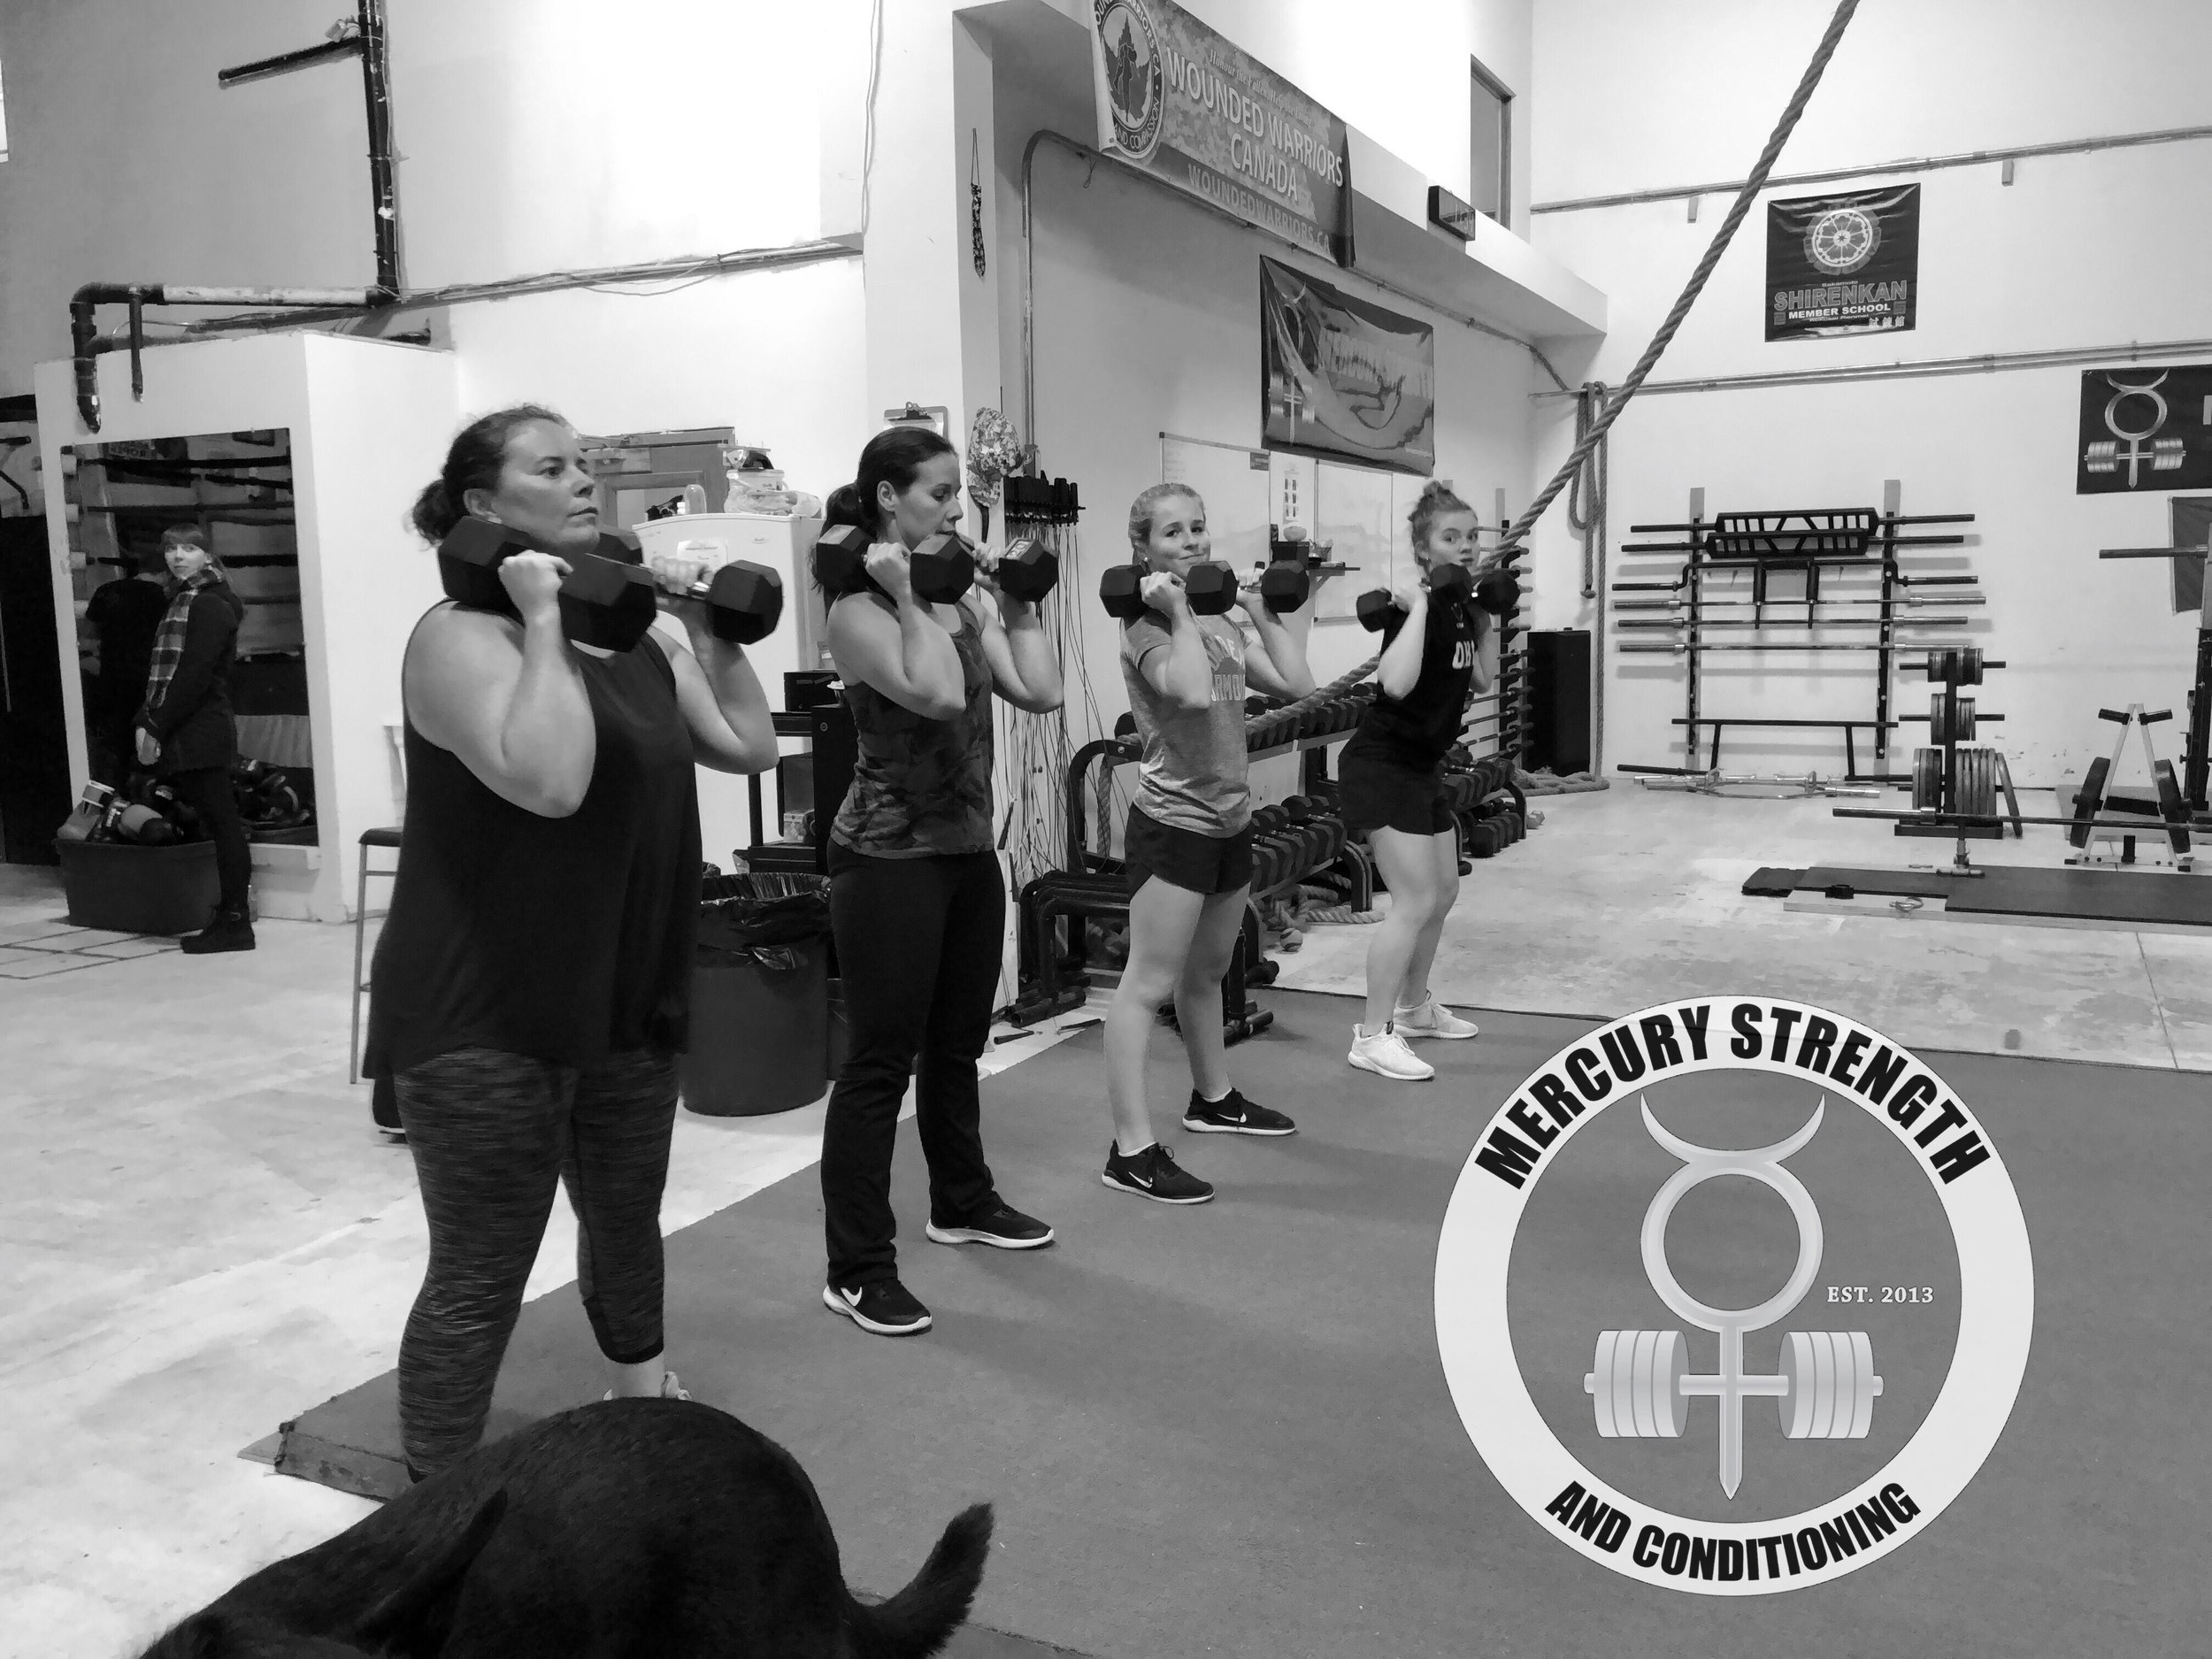 Gym-powerlifting-fitness-personal training-training-bootcamp-crossfit-kingston-kingston gym-kids-mercury-strength-conditioning-athlete-dumbbell-front squat